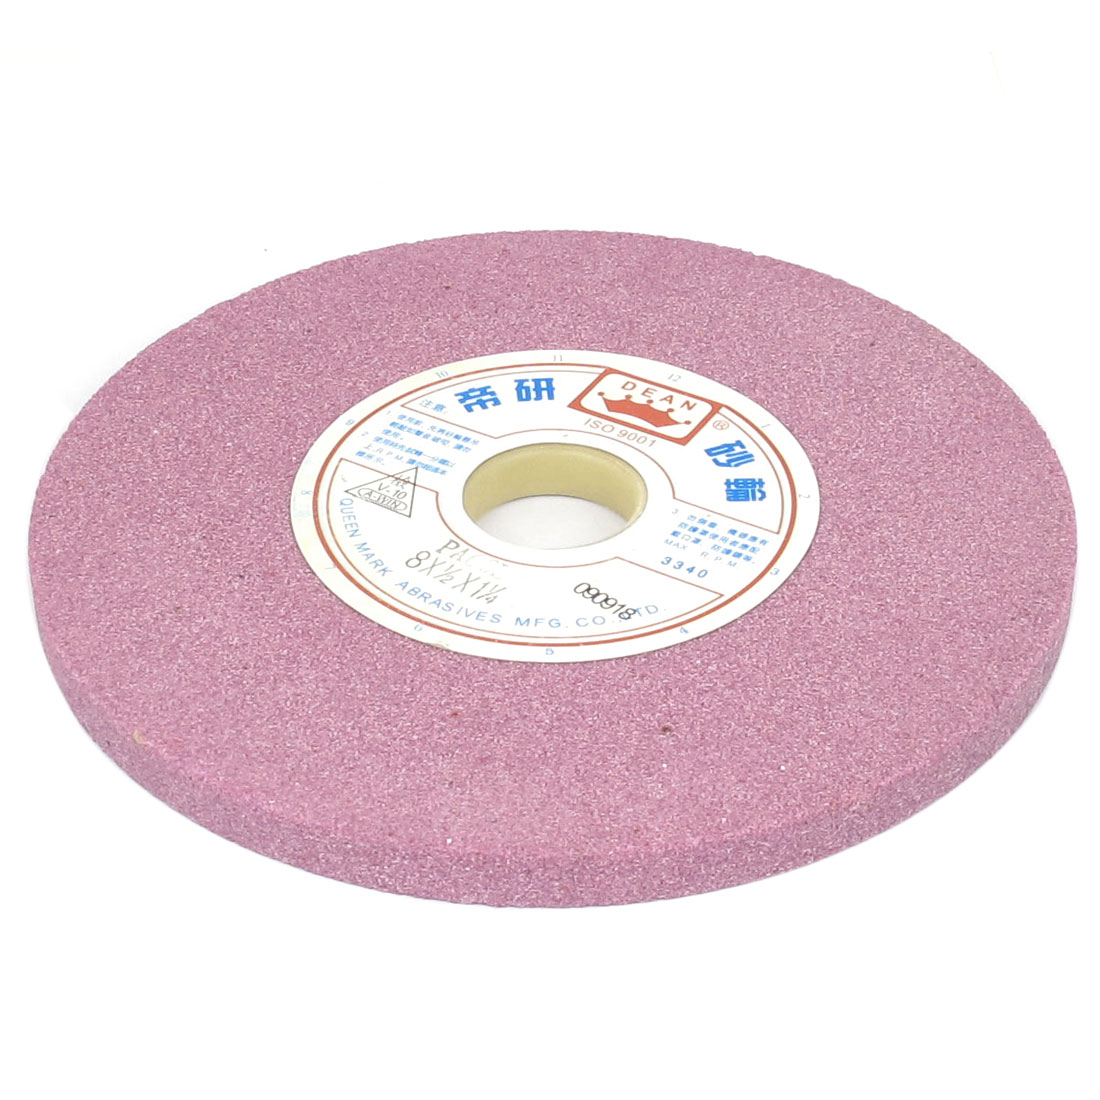 Round Flat Abrasives Grinding Wheel Light Purple 19.5 x 1.3 x 3.2cm